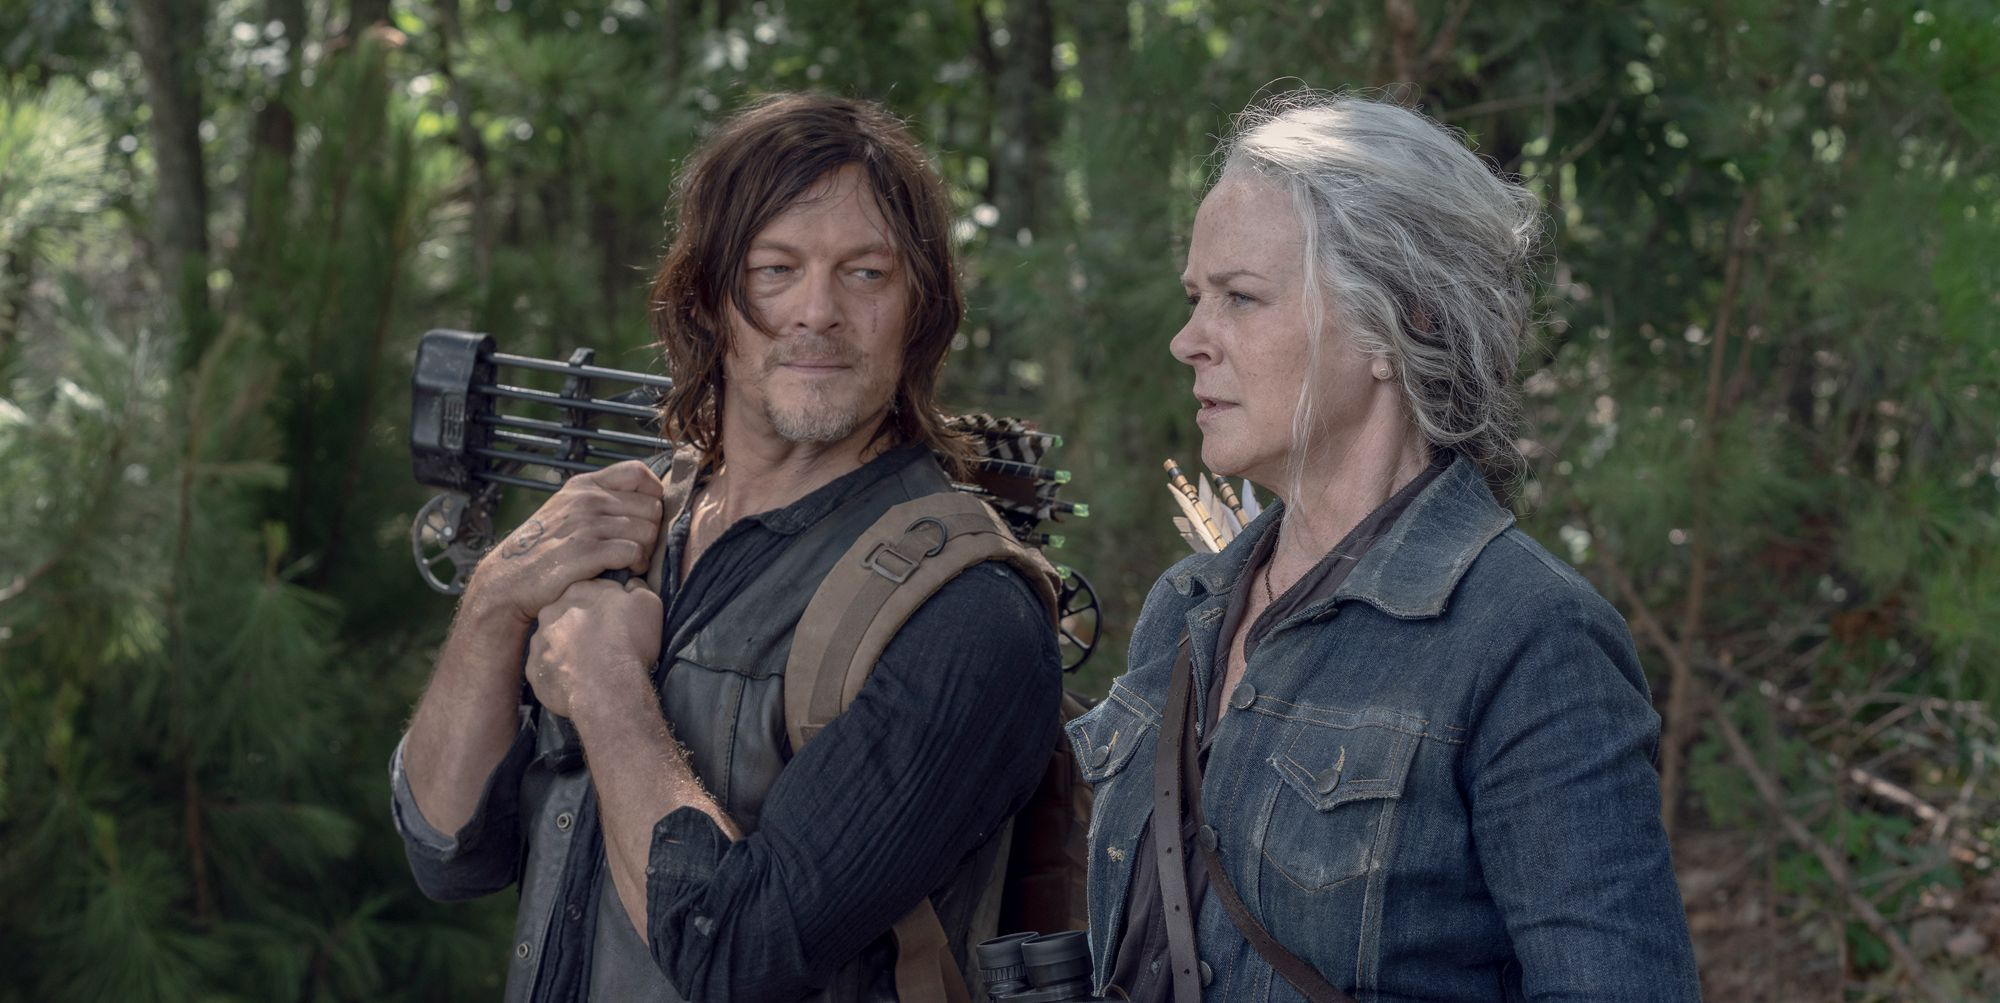 The Walking Dead answered major question about Daryl's sexuality